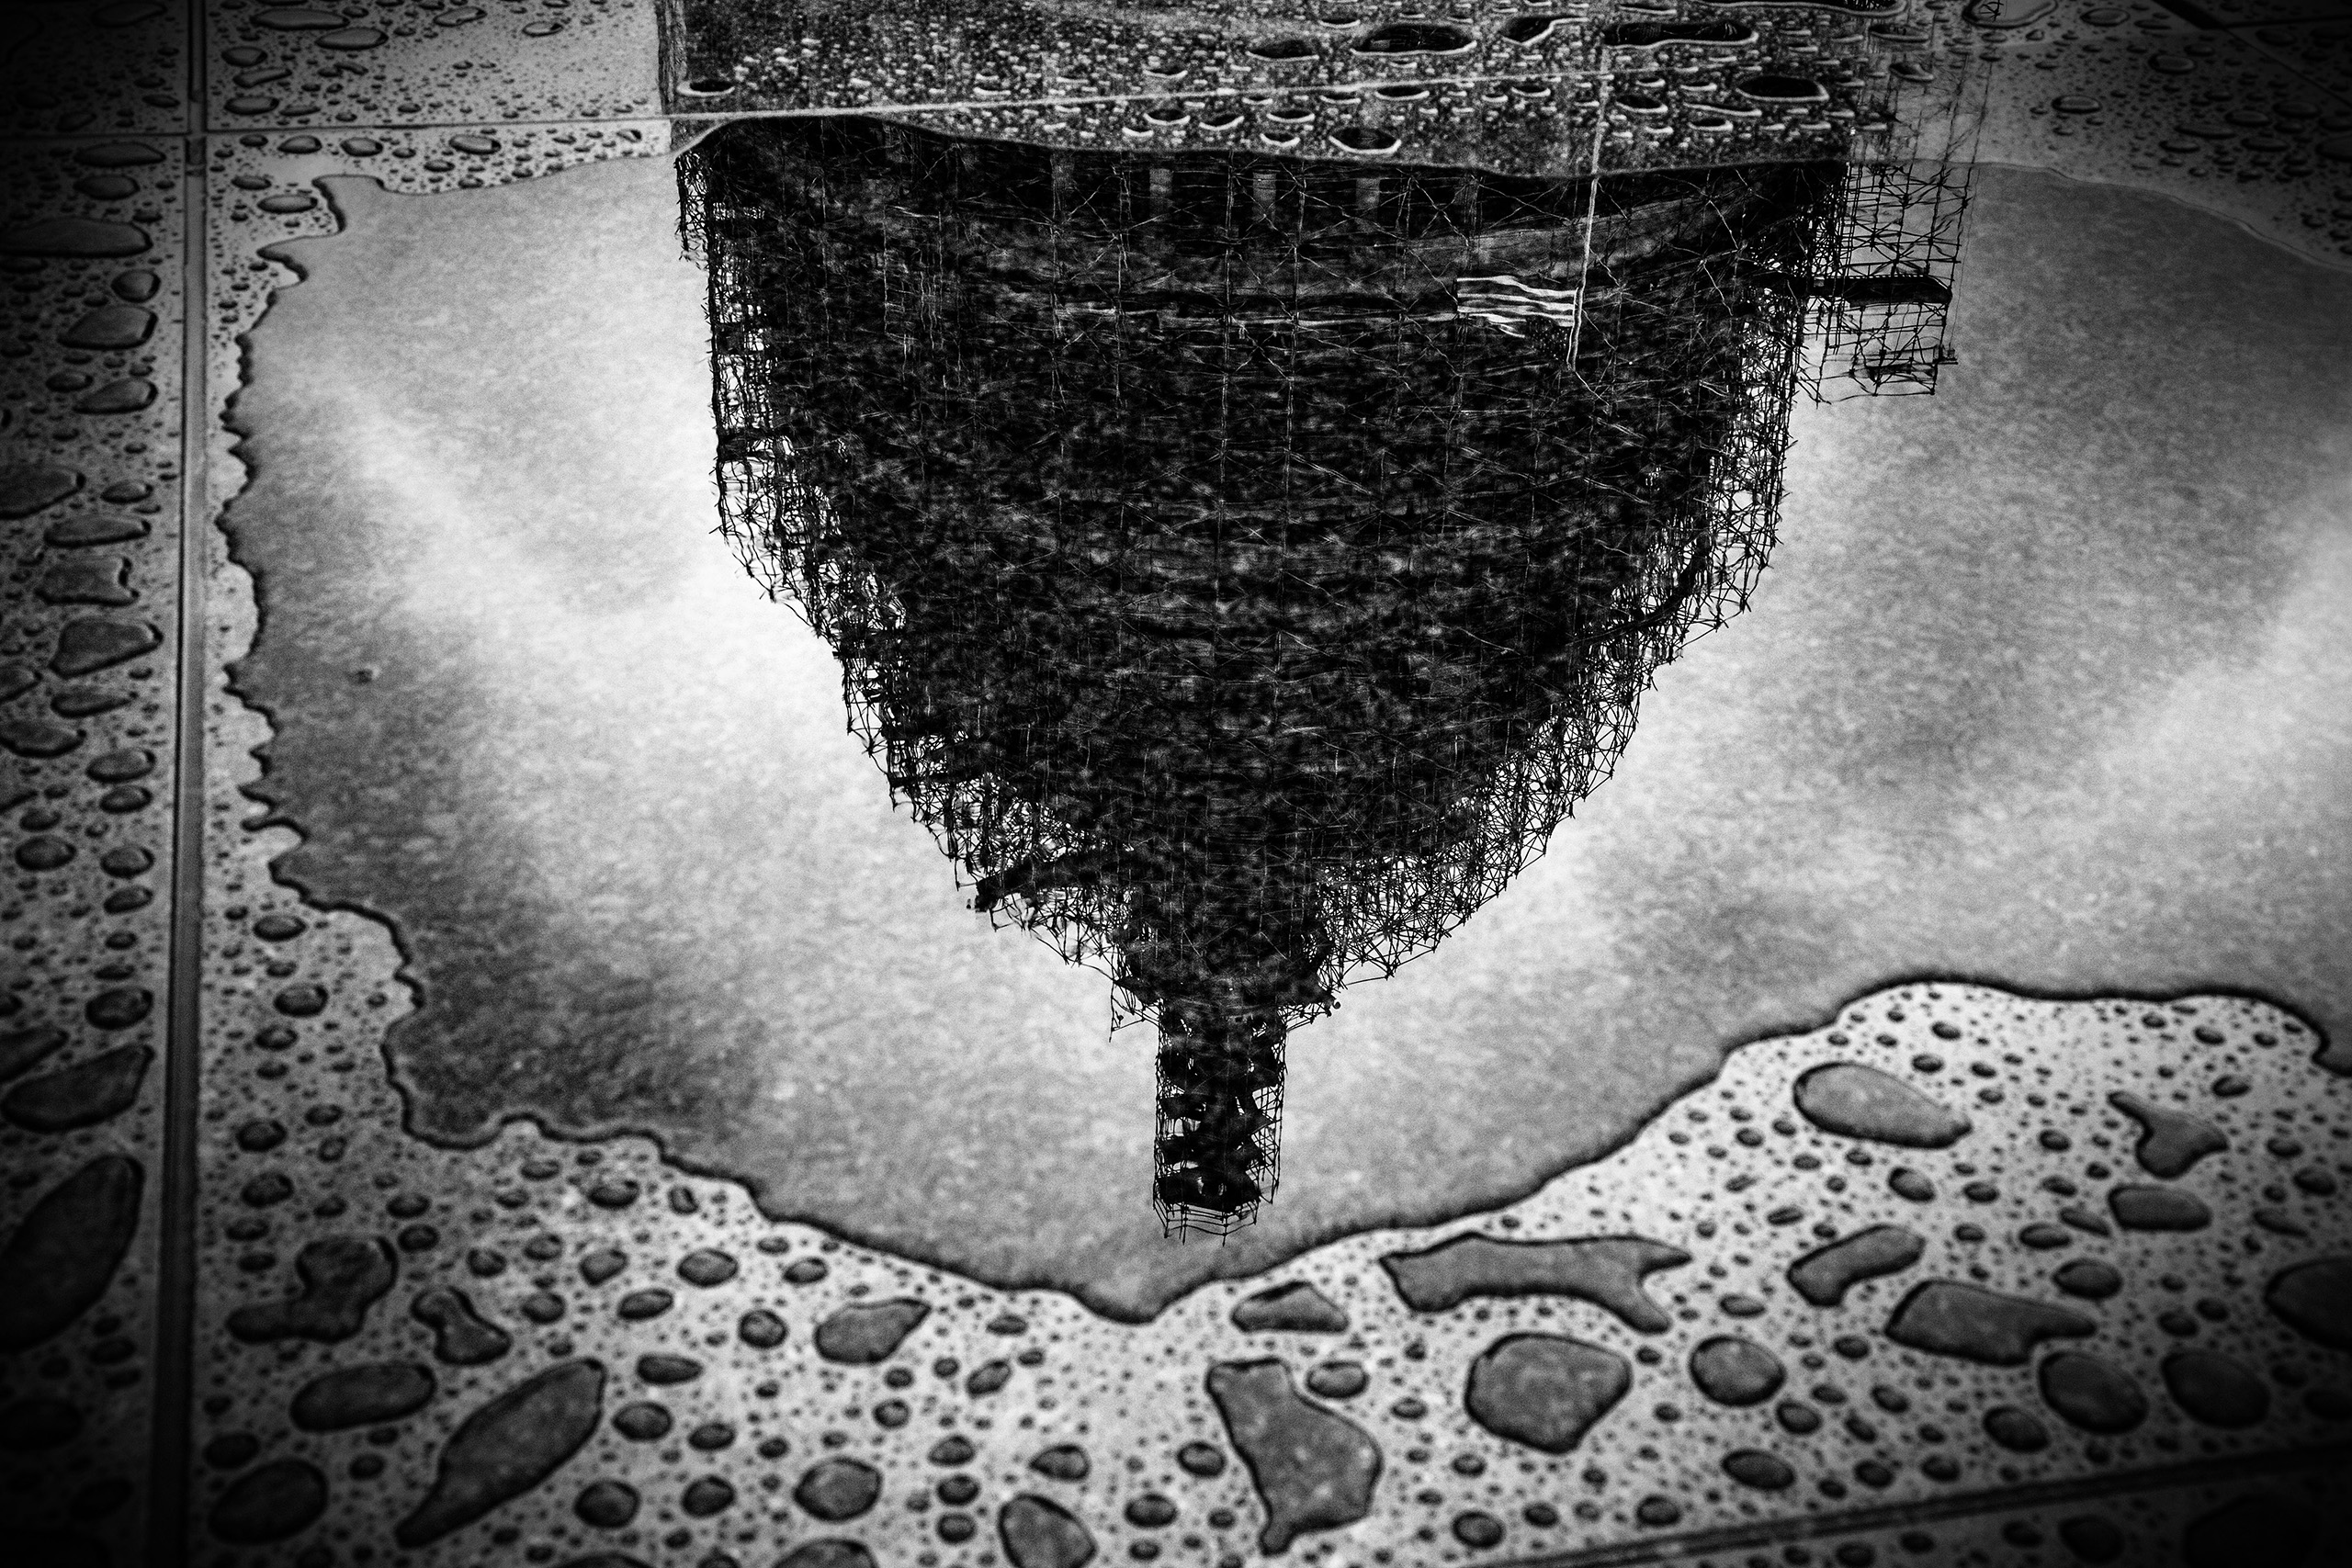 U.S. Capitol Dome under repair reflected in a puddle, in Washington D.C., Sept. 30, 2015.